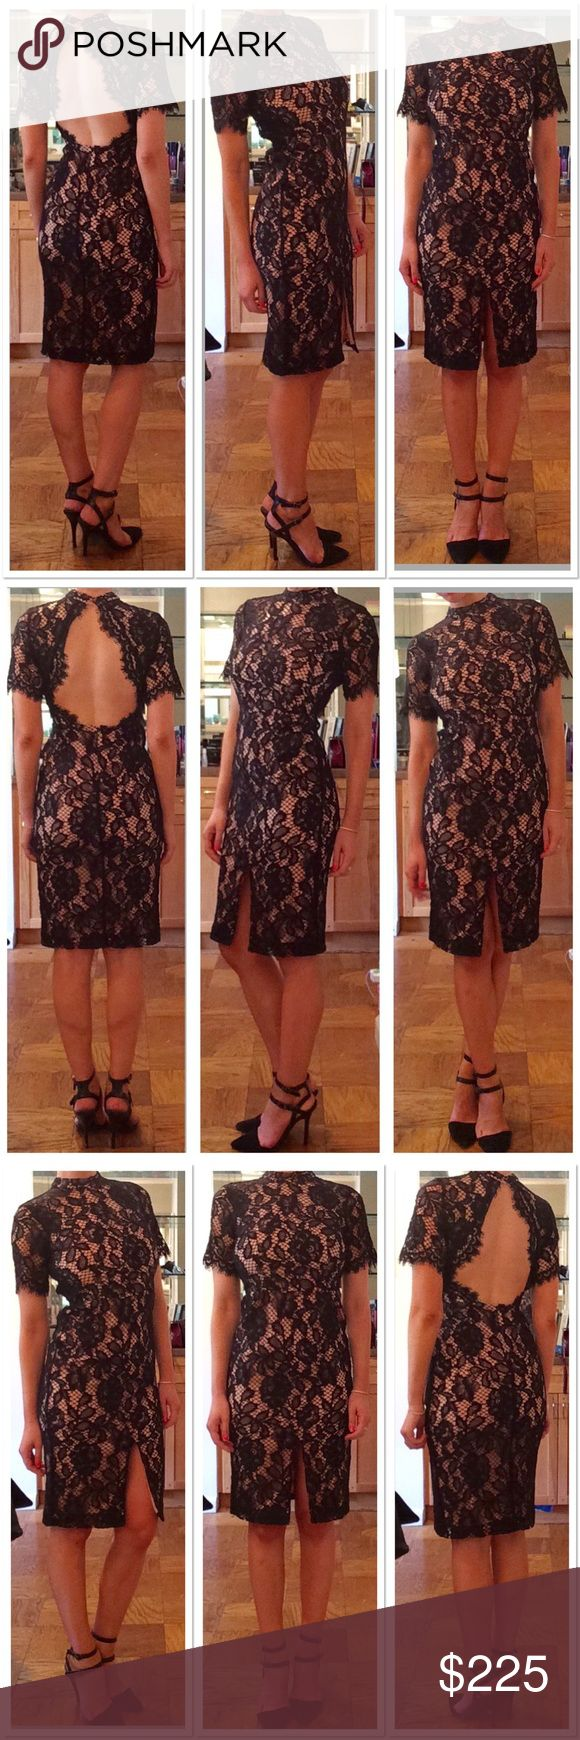 Additional Photos - Alexis Dress Please see original listing 💖 Alexis Dresses Midi